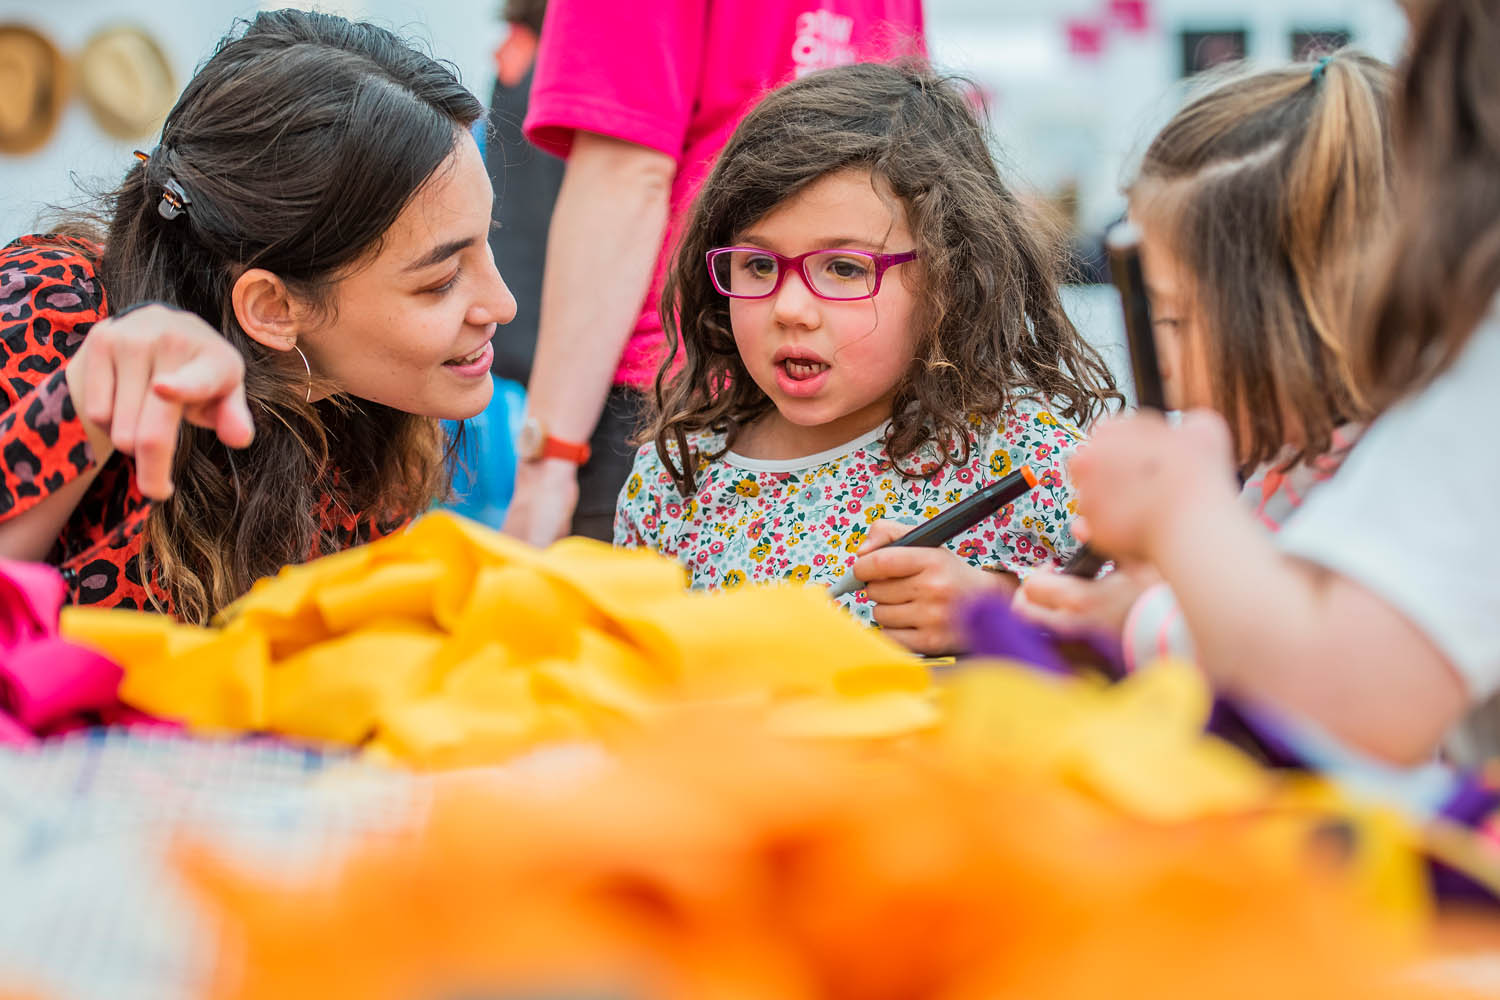 Sophia talking to a young brunette girl with red glasses. She is pointing to yellow material